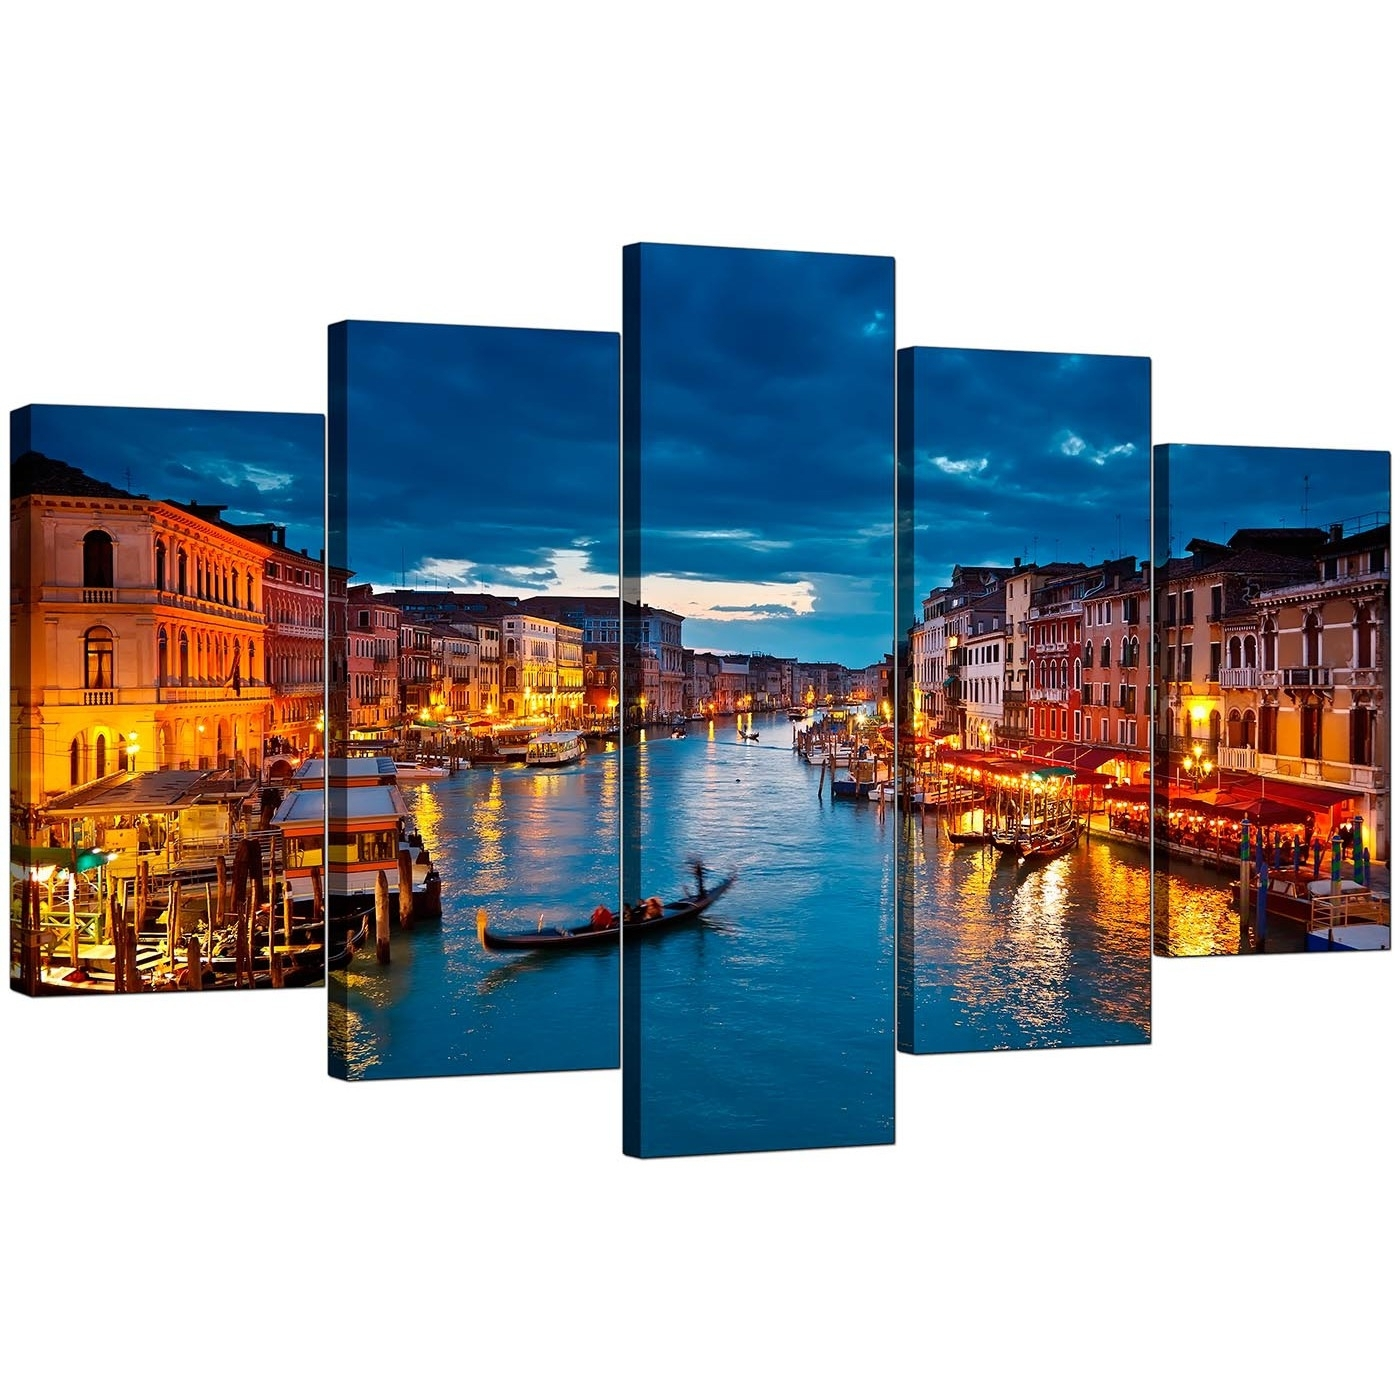 Venice Italy Canvas Prints For Your Living Room – 5 Panel In 2017 Italy Canvas Wall Art (View 2 of 15)